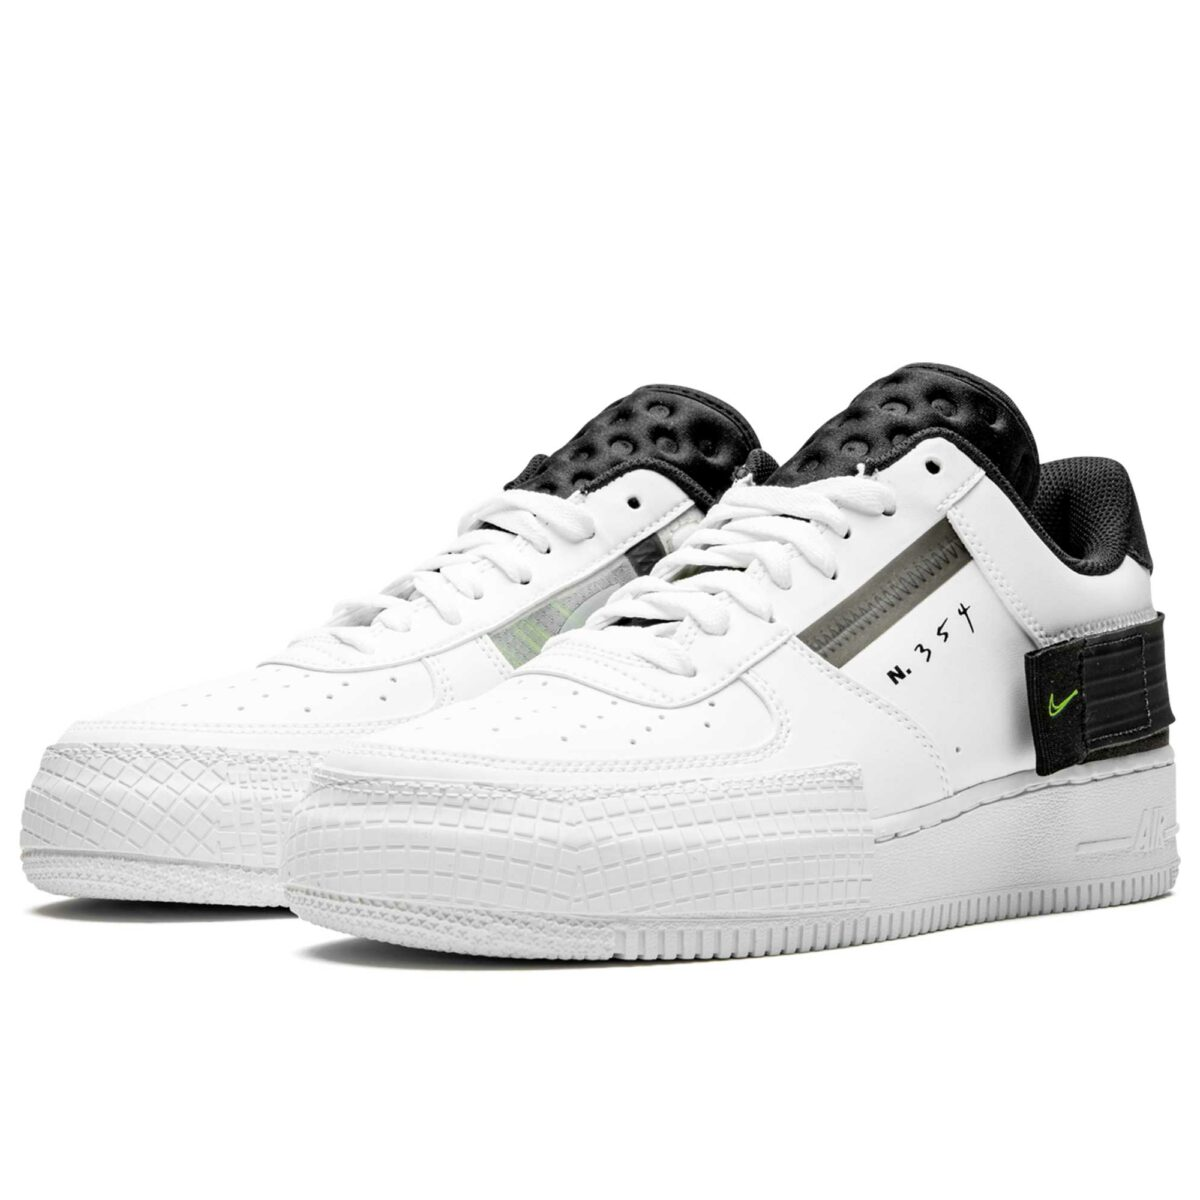 nike air force 1 type white black AT7859_101 купить